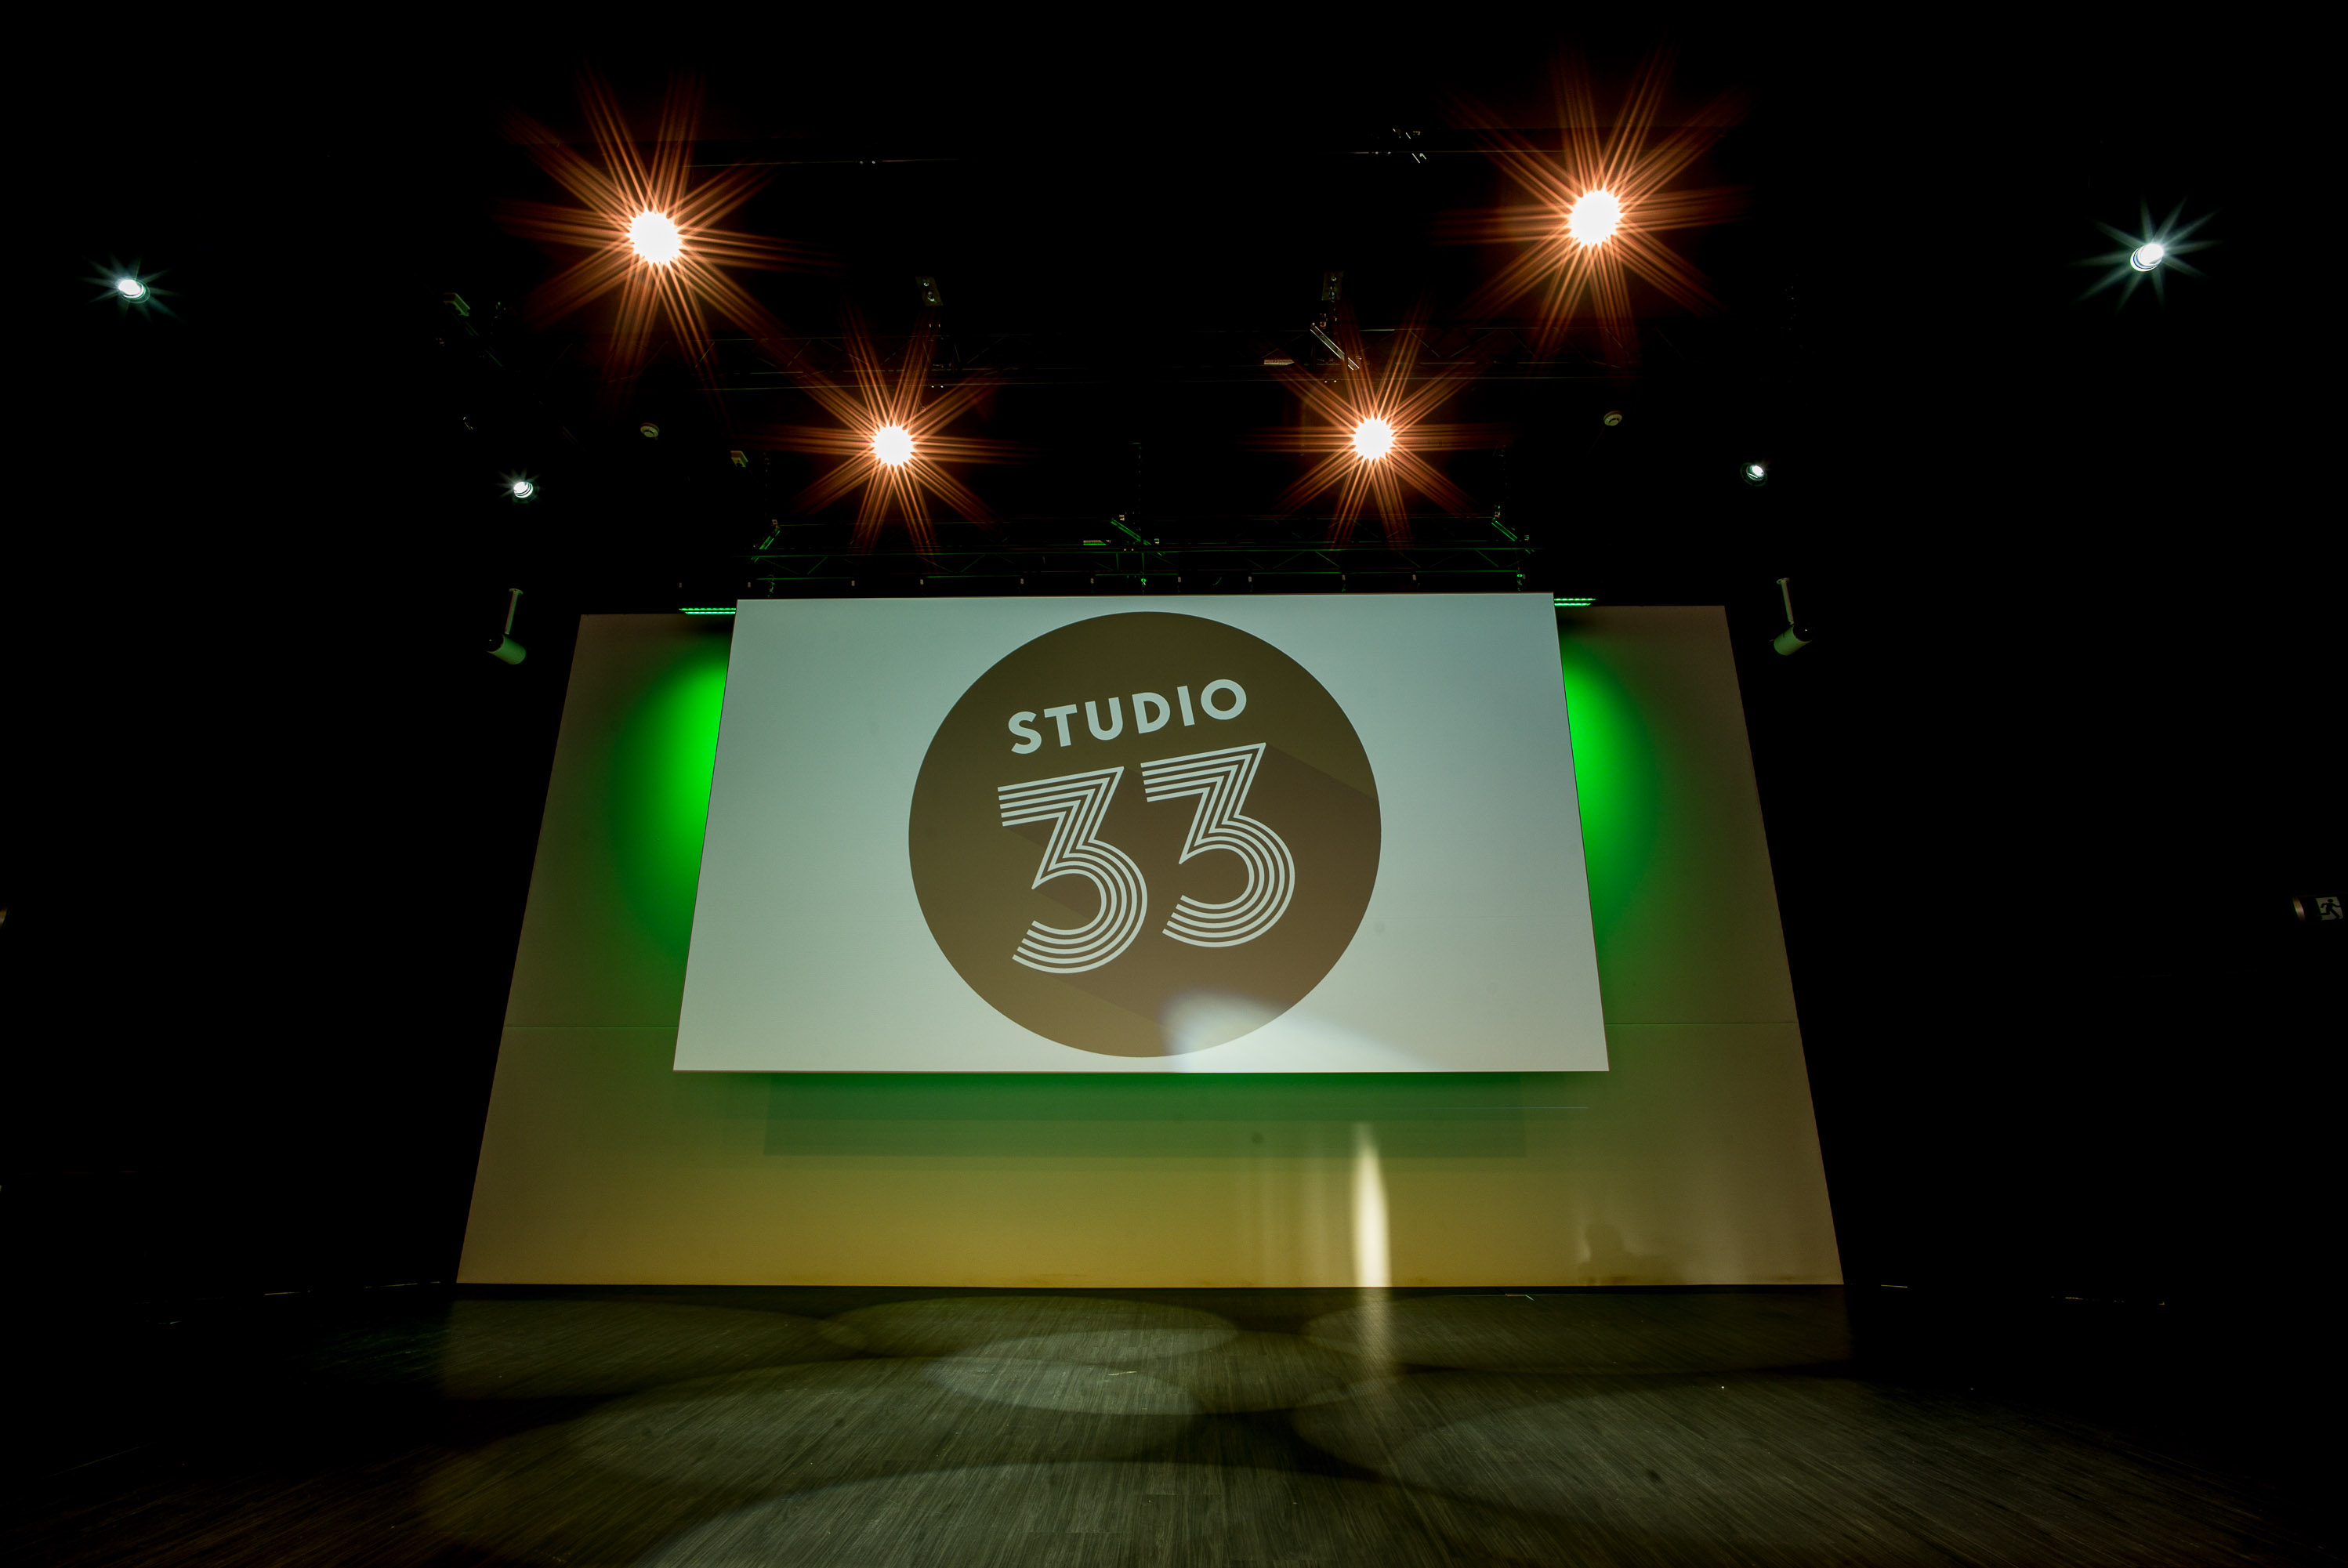 STUDIO33 - Projectiescherm